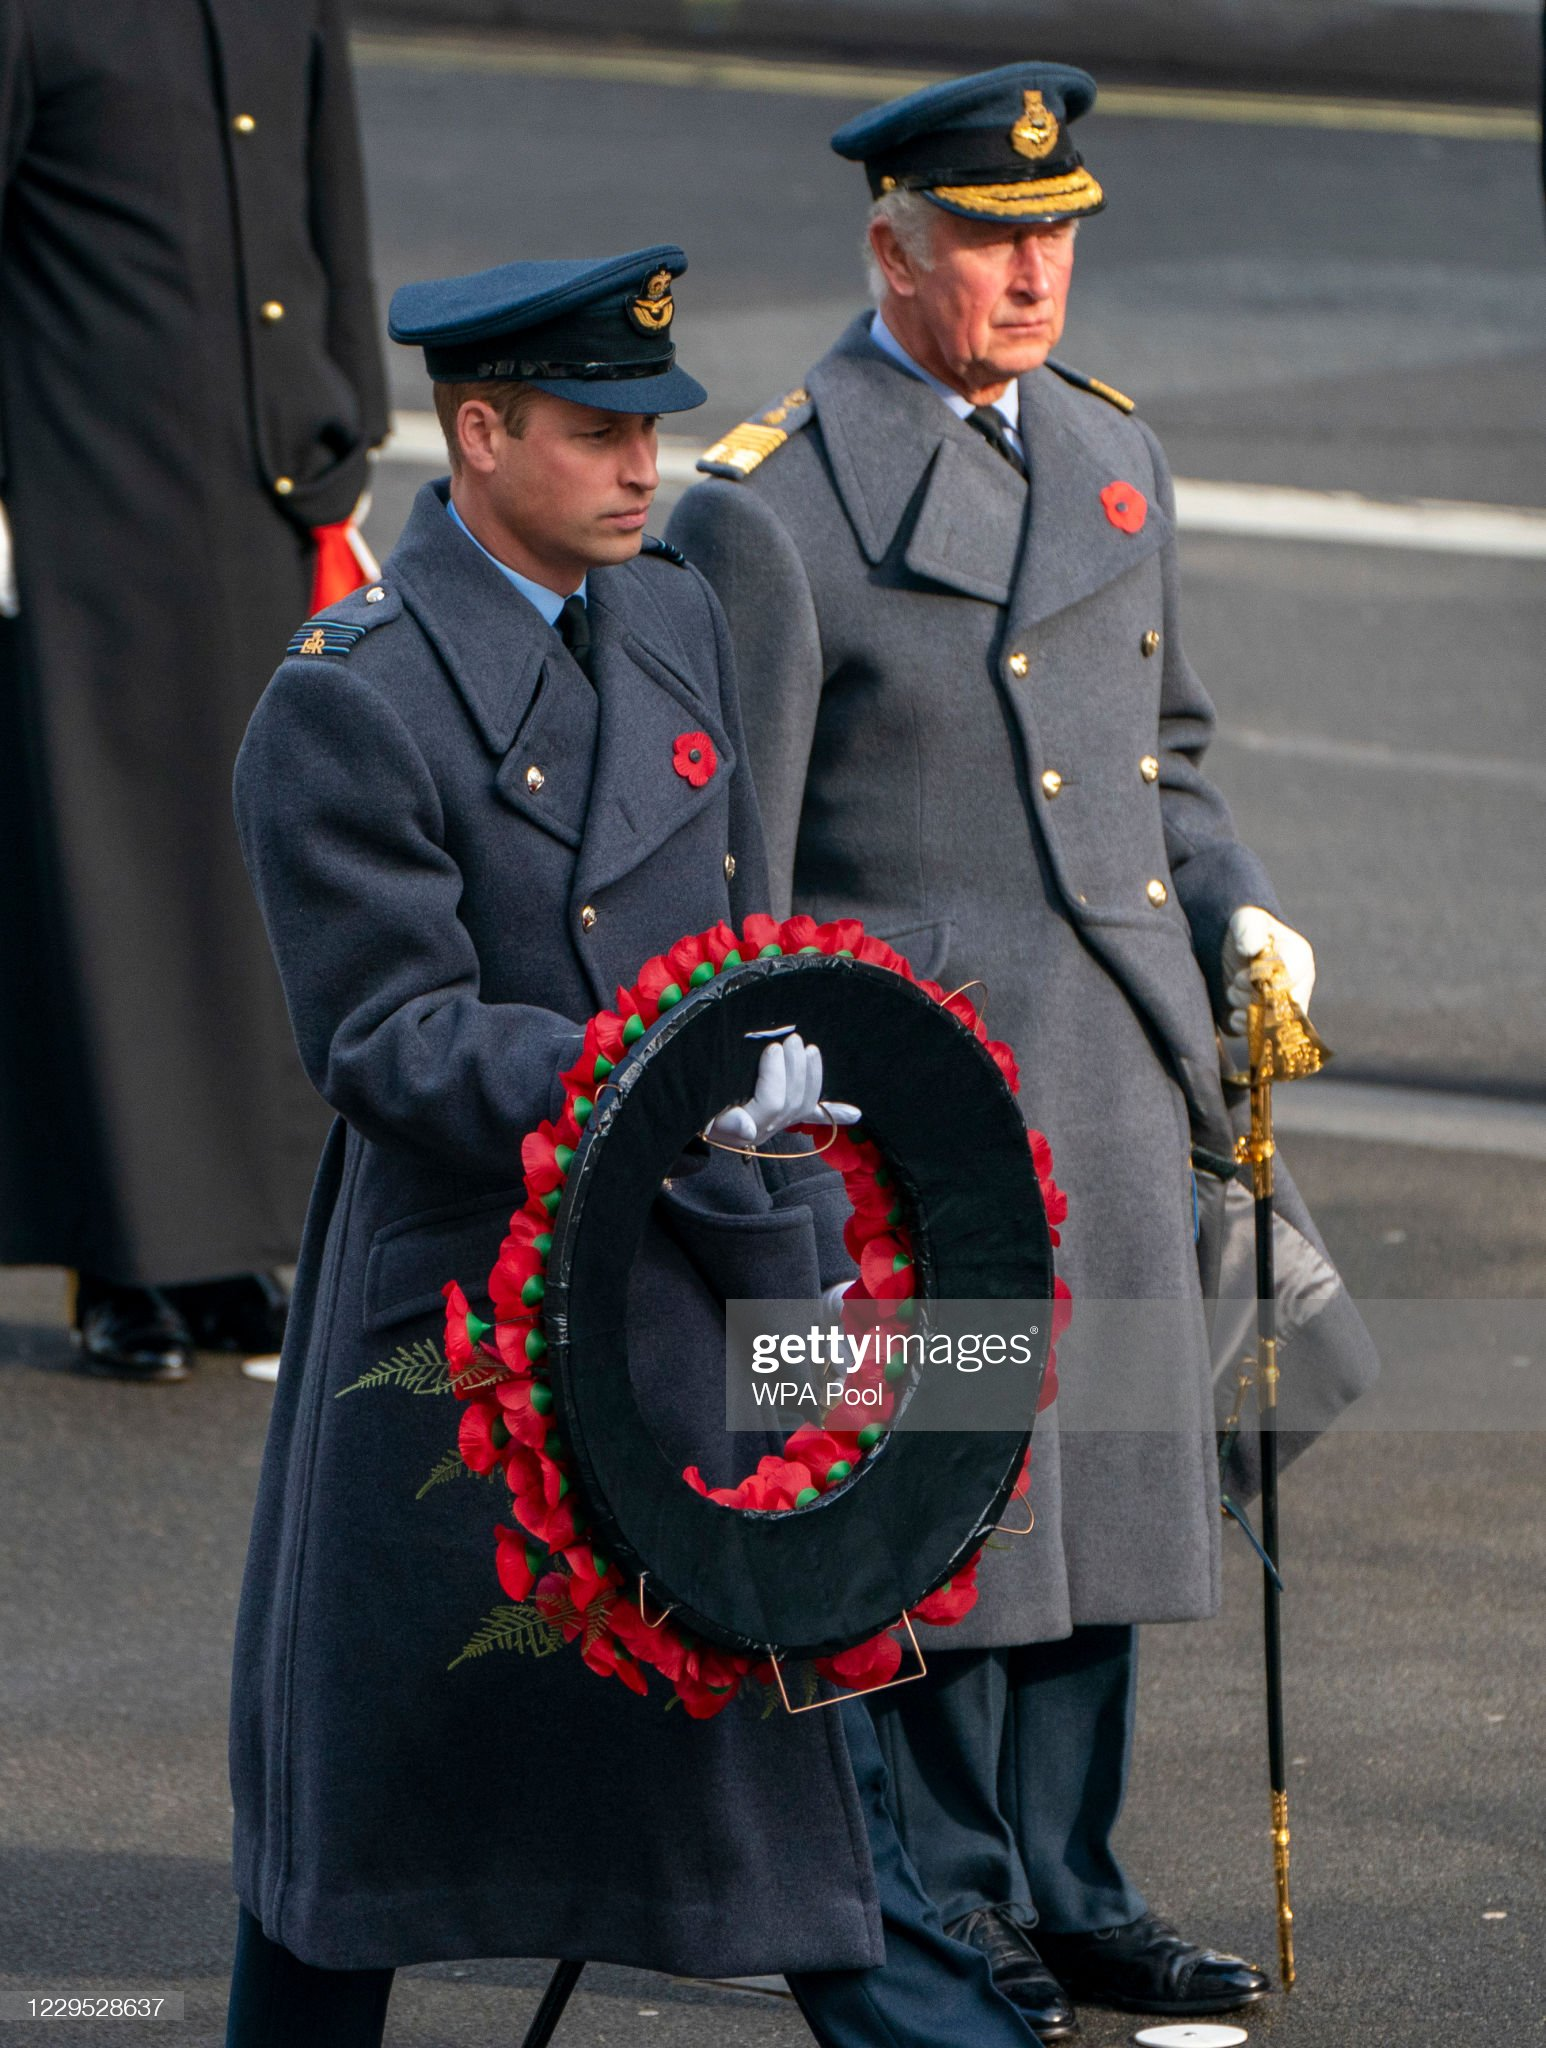 https://media.gettyimages.com/photos/prince-william-duke-of-cambridge-and-prince-charles-prince-of-wales-picture-id1229528637?s=2048x2048